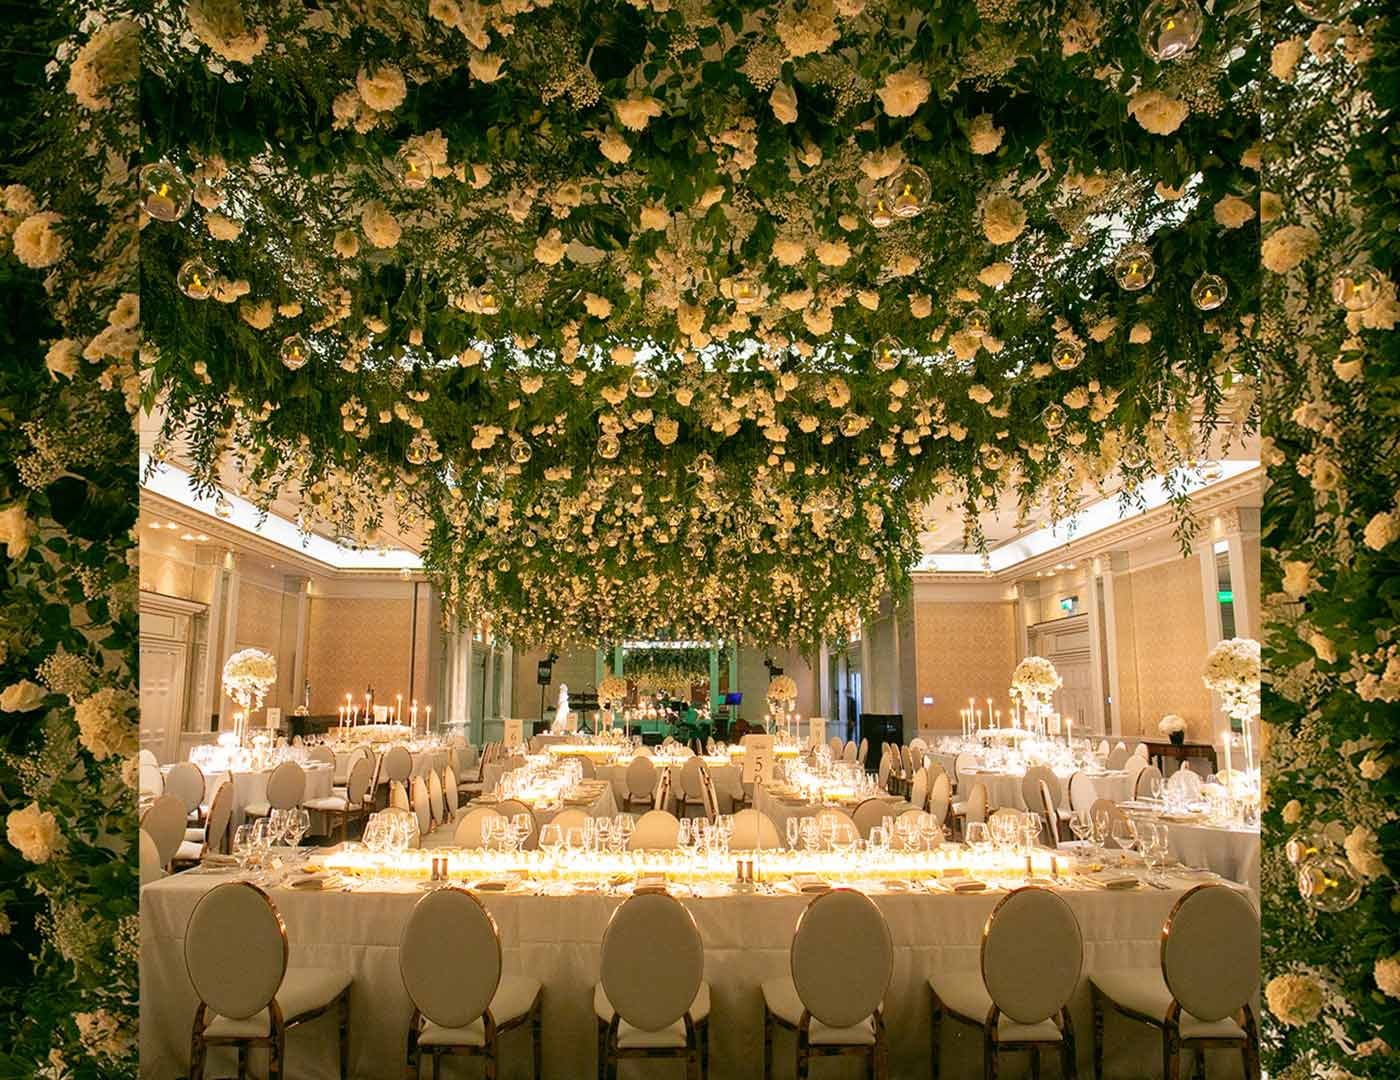 Destination Weddings Ireland, The Shelbourne Hotel, Event Planner in Dublin, Olivia Buckley International, Wedding planners in Ireland, Event Planners in Ireland